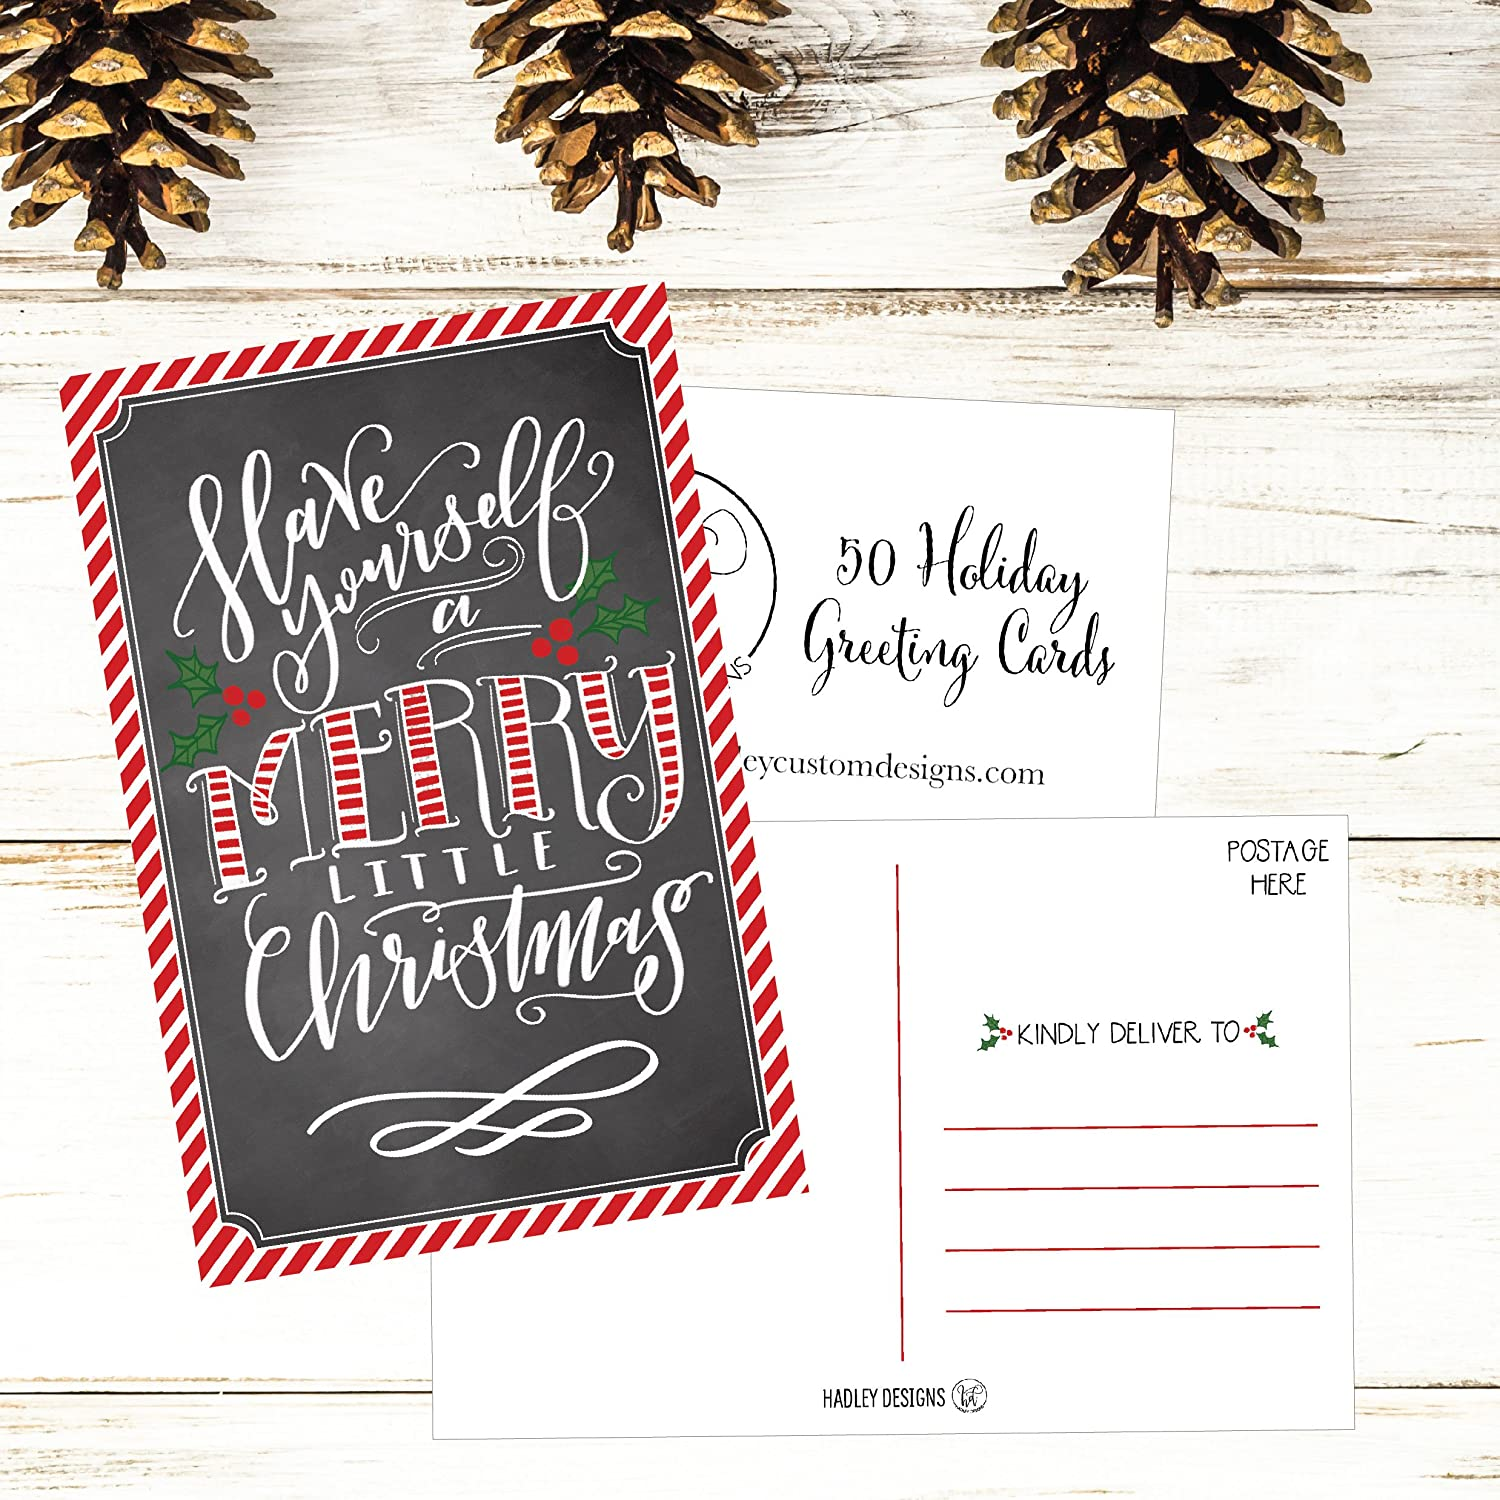 50 Holiday Greeting Cards Cute Fancy Blank Winter Christmas Postcard Set Bulk Pack Of Premium Seasons Greetings Note Happy New Years Cards For